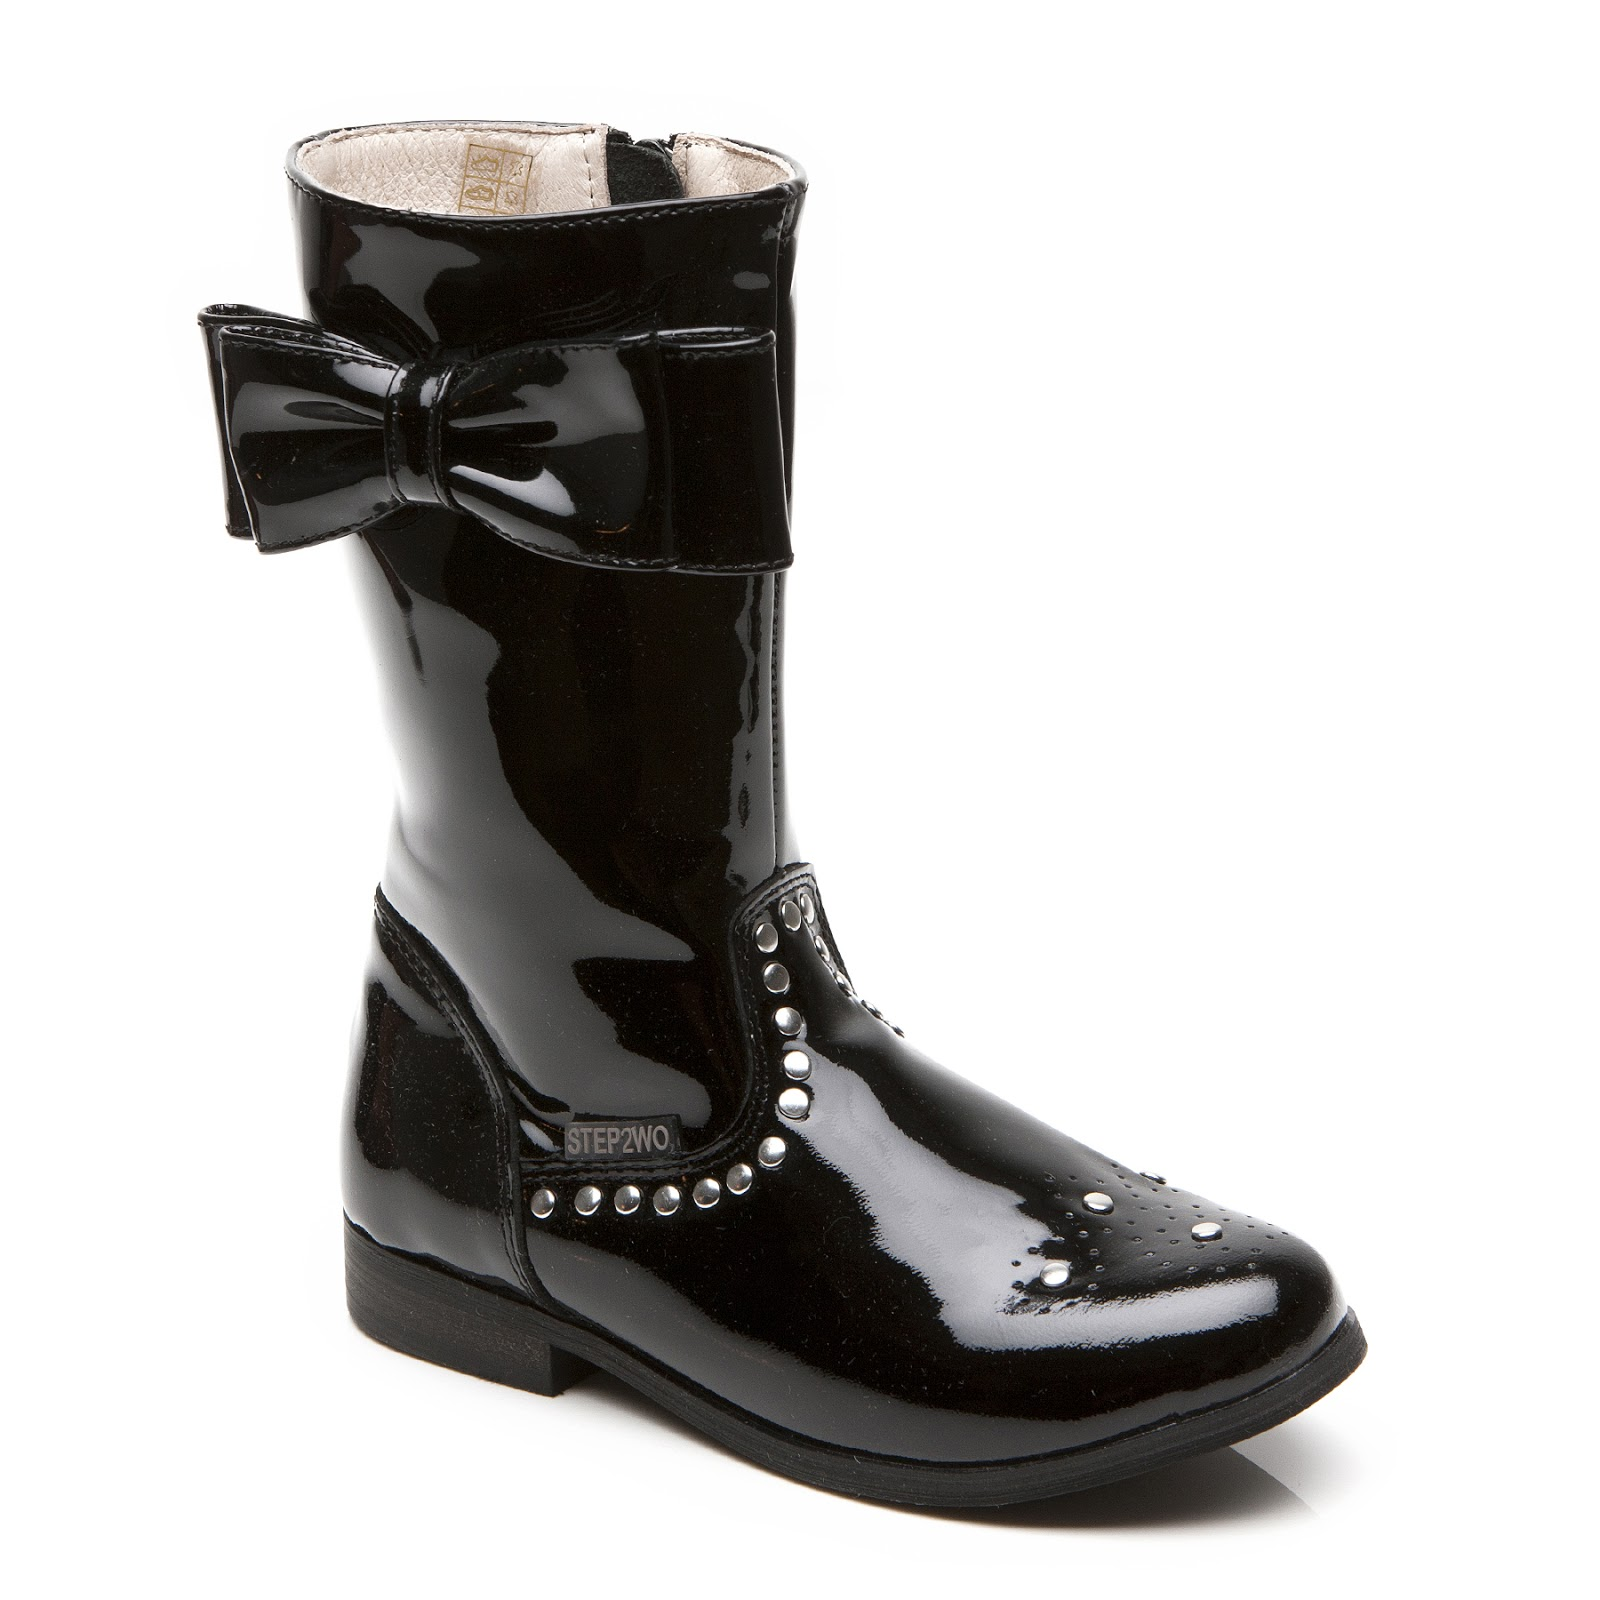 Step2wo | Step2wo | Teela - Patent Bow & Stud Boot Children's Boot ...